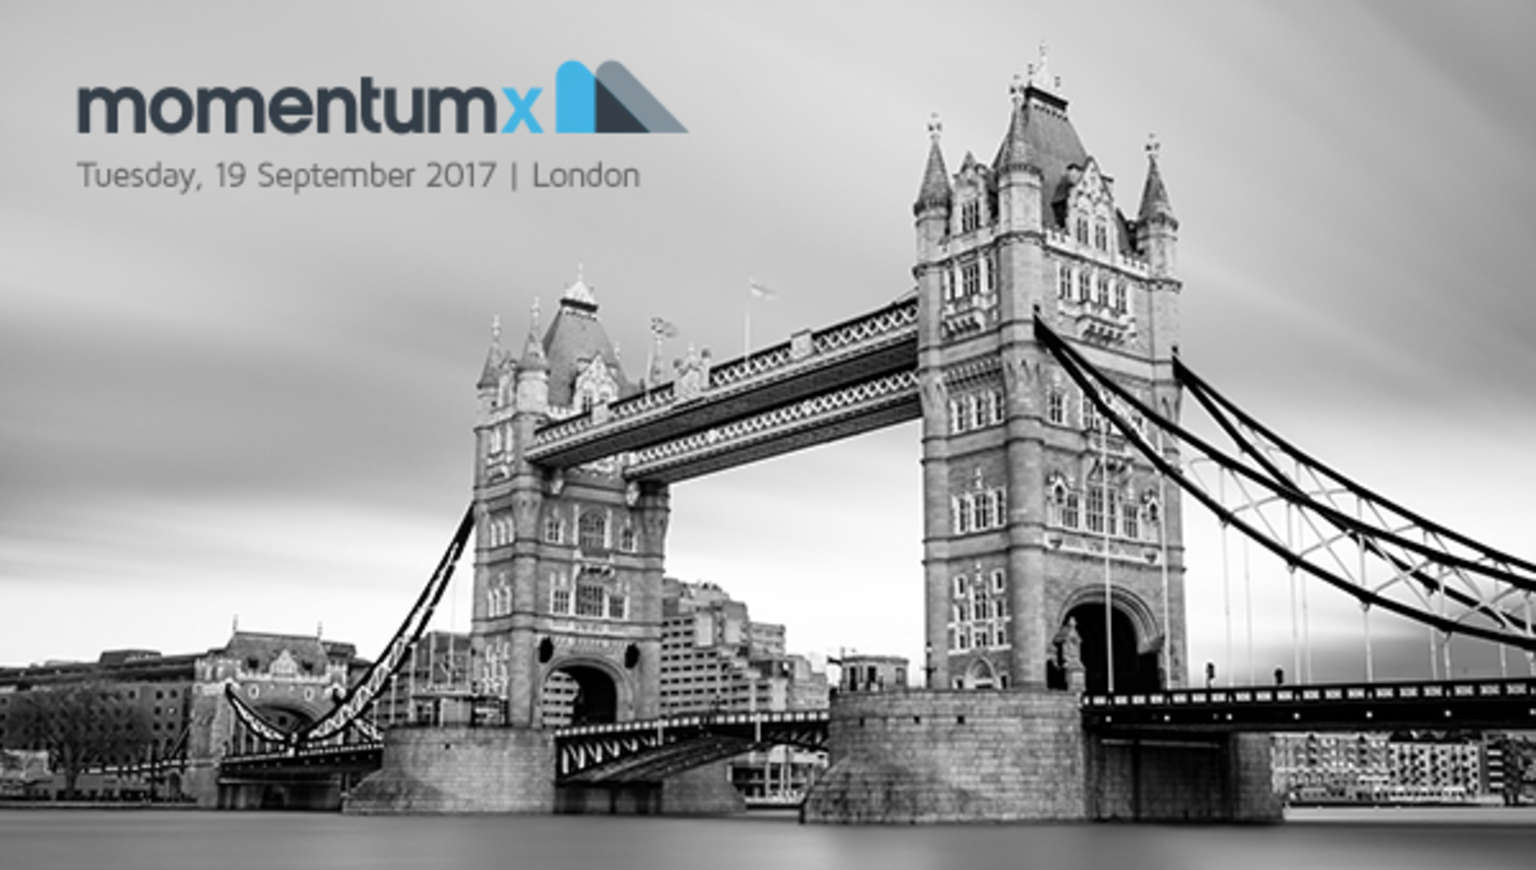 Come to the Momentum X customer conference from DocuSign.